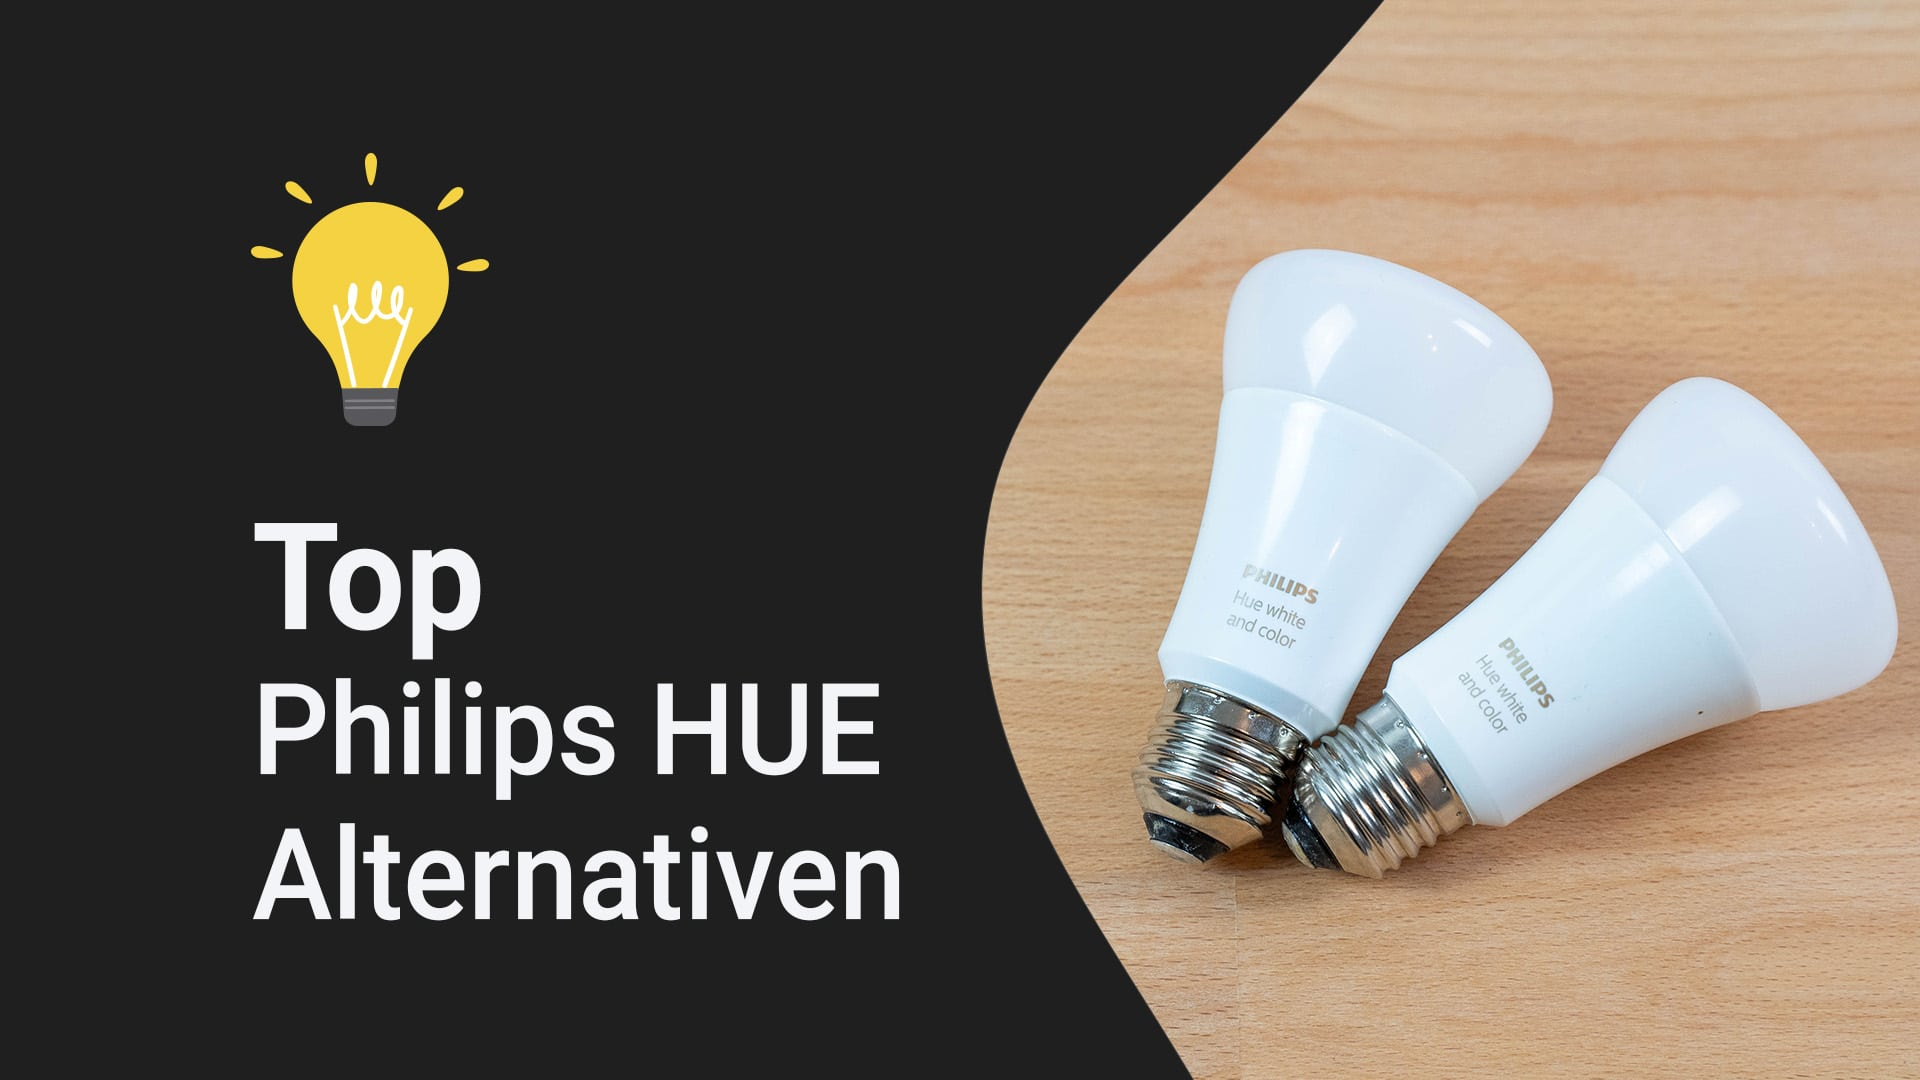 Top Philips HUE Alternativen - digitalewelt.at